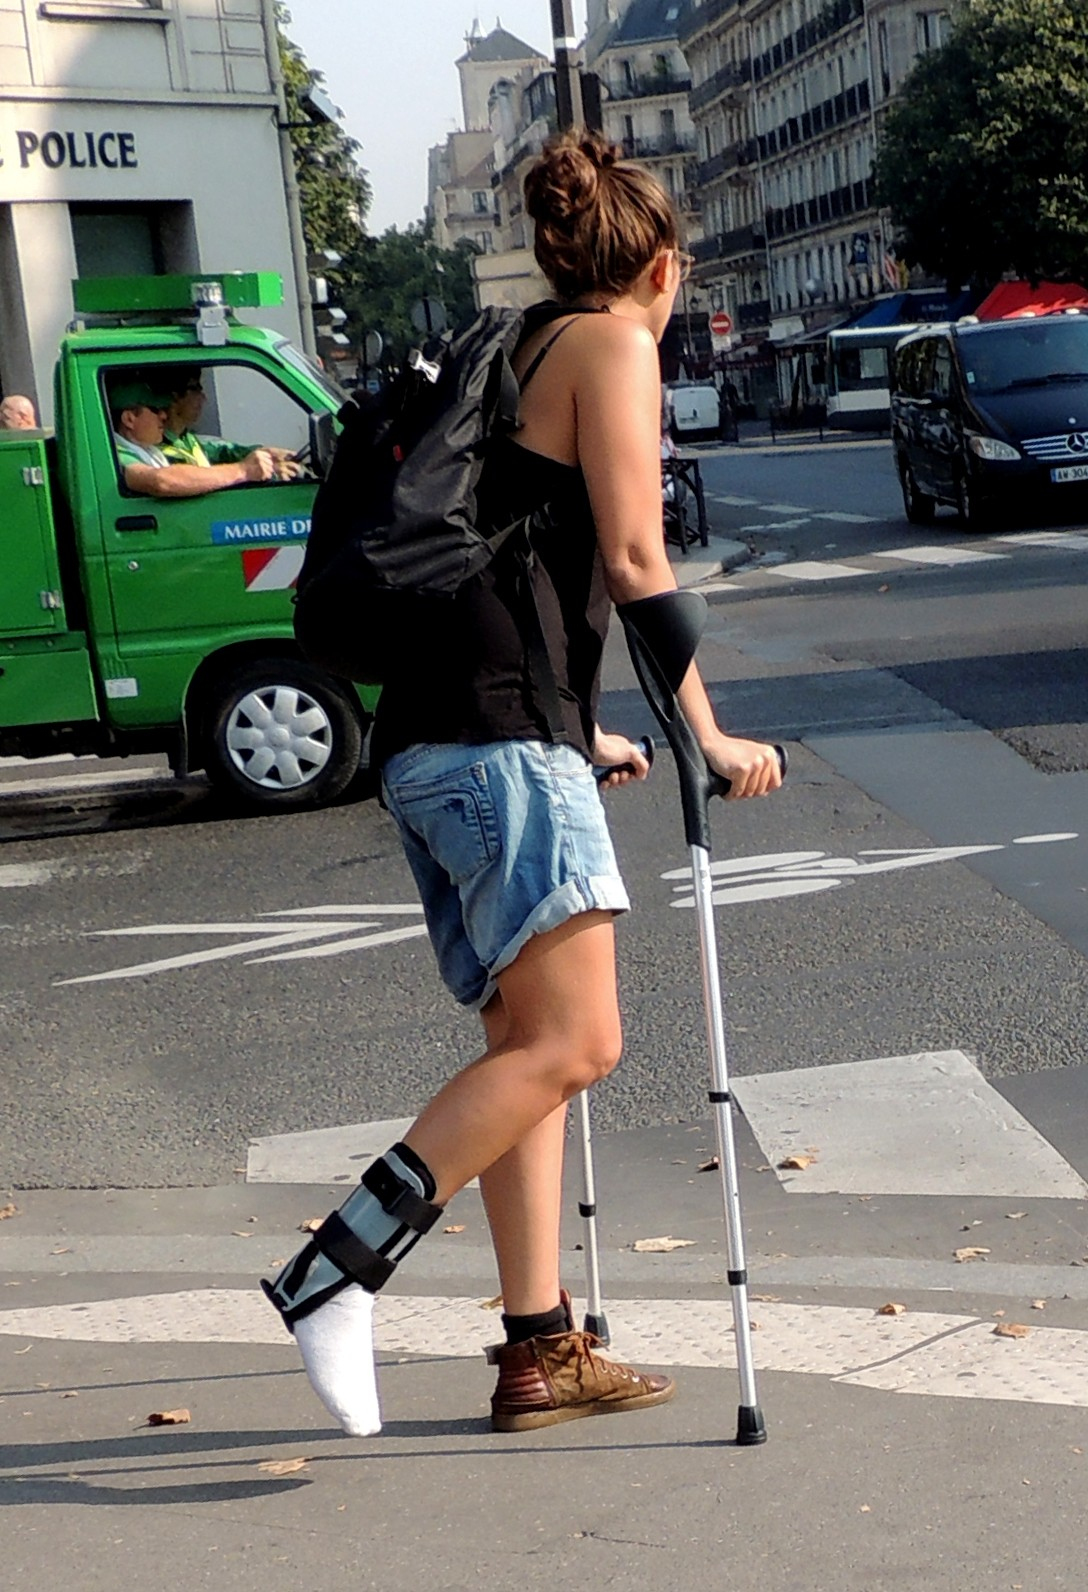 Girl in ankle brace on crutches